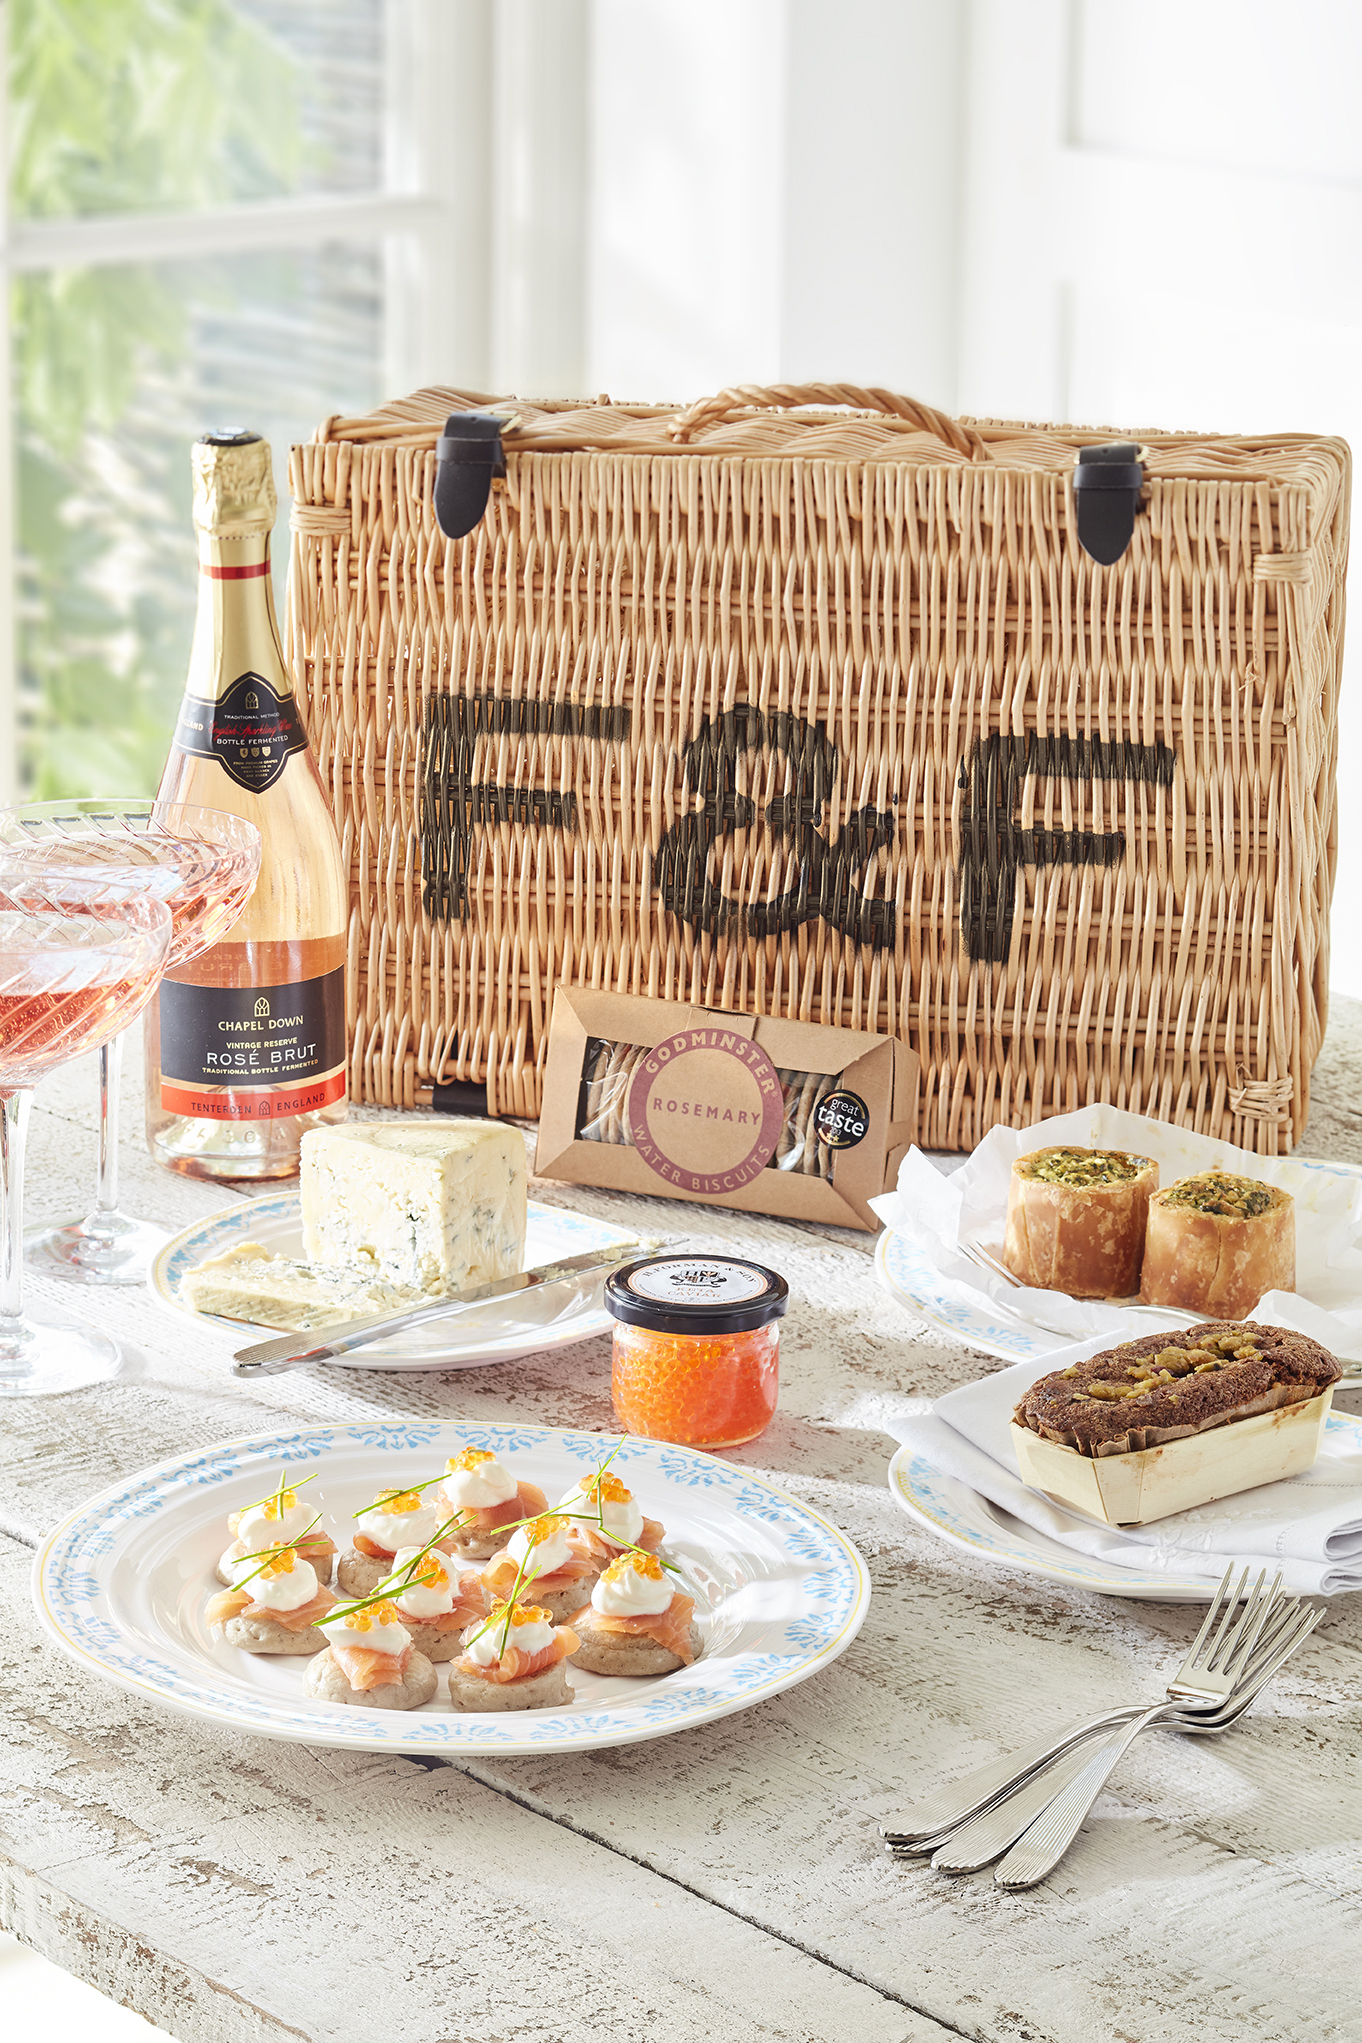 It Is Never Too Late For An Artisan Picnic | Sophie Conran Hamper – Forman & Field